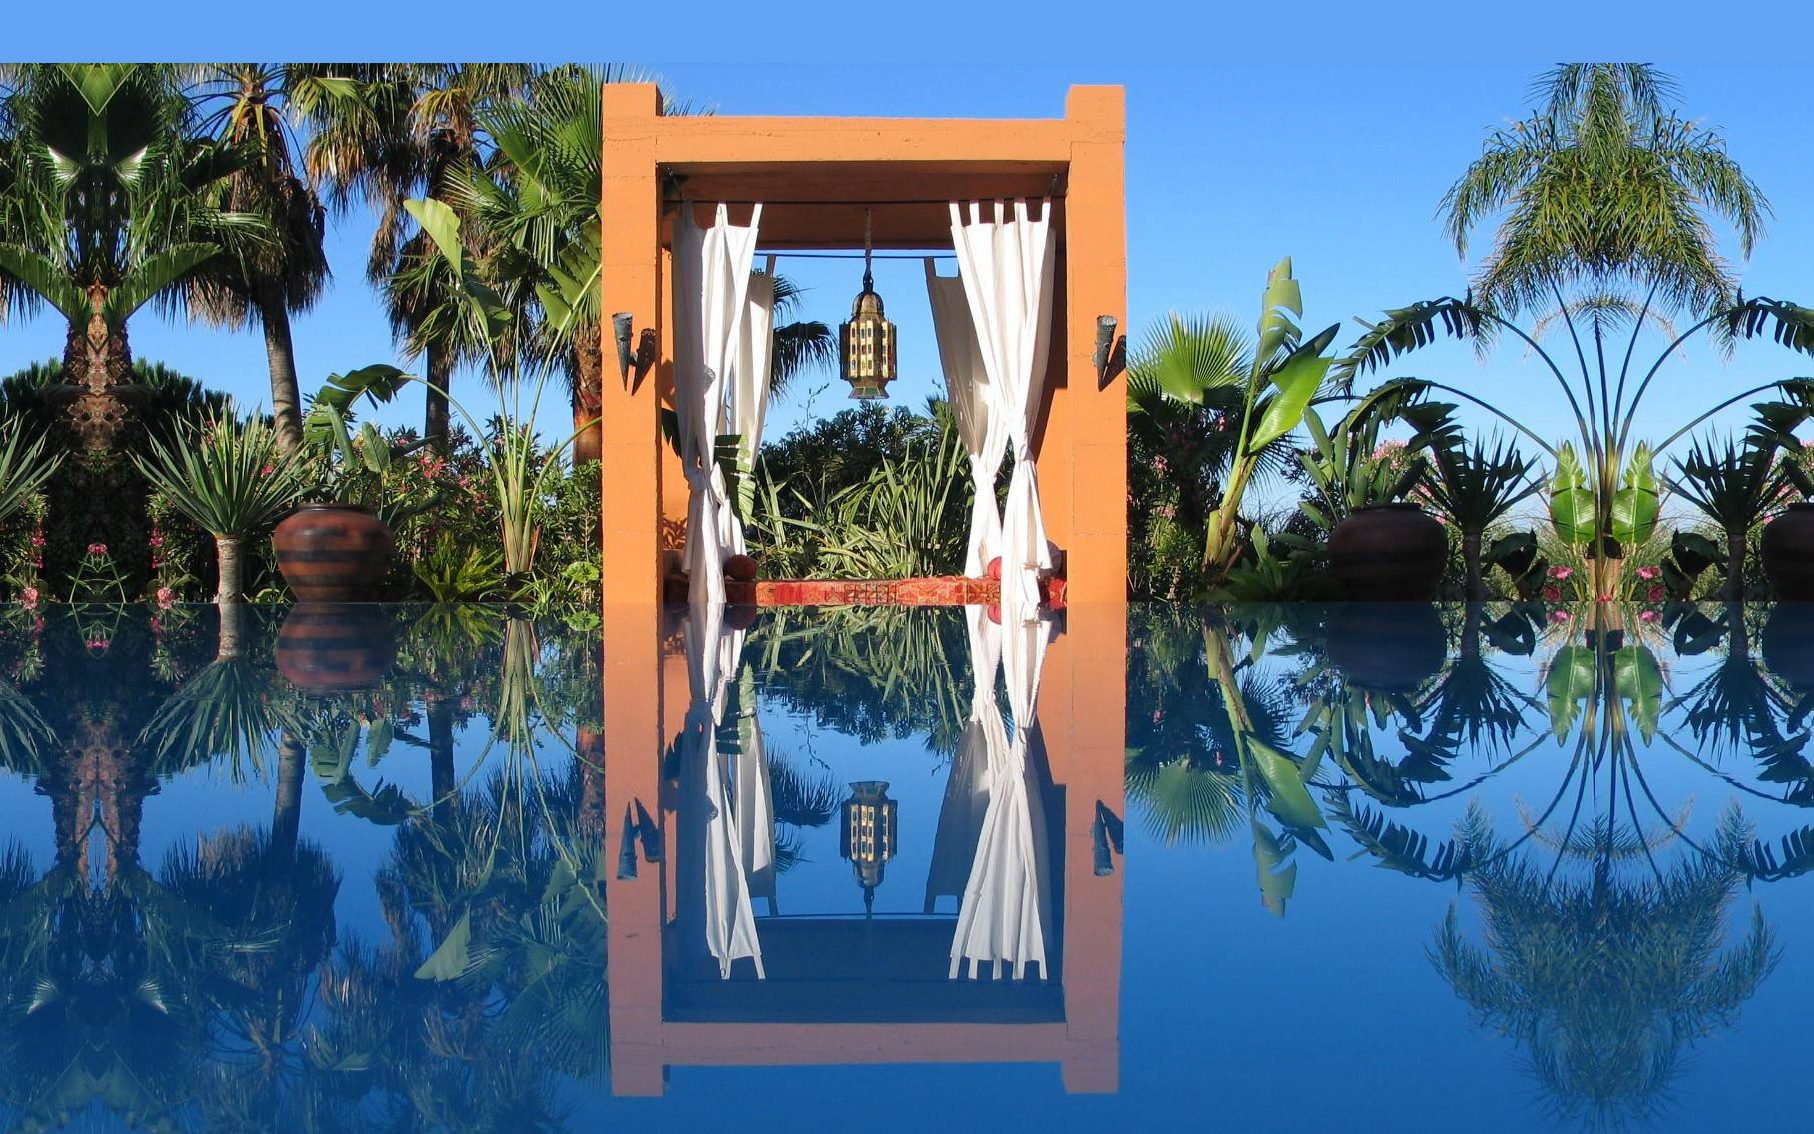 The infinity pool at DDG retreat which has got itself noticed as one of the best in Europe according to several magazines